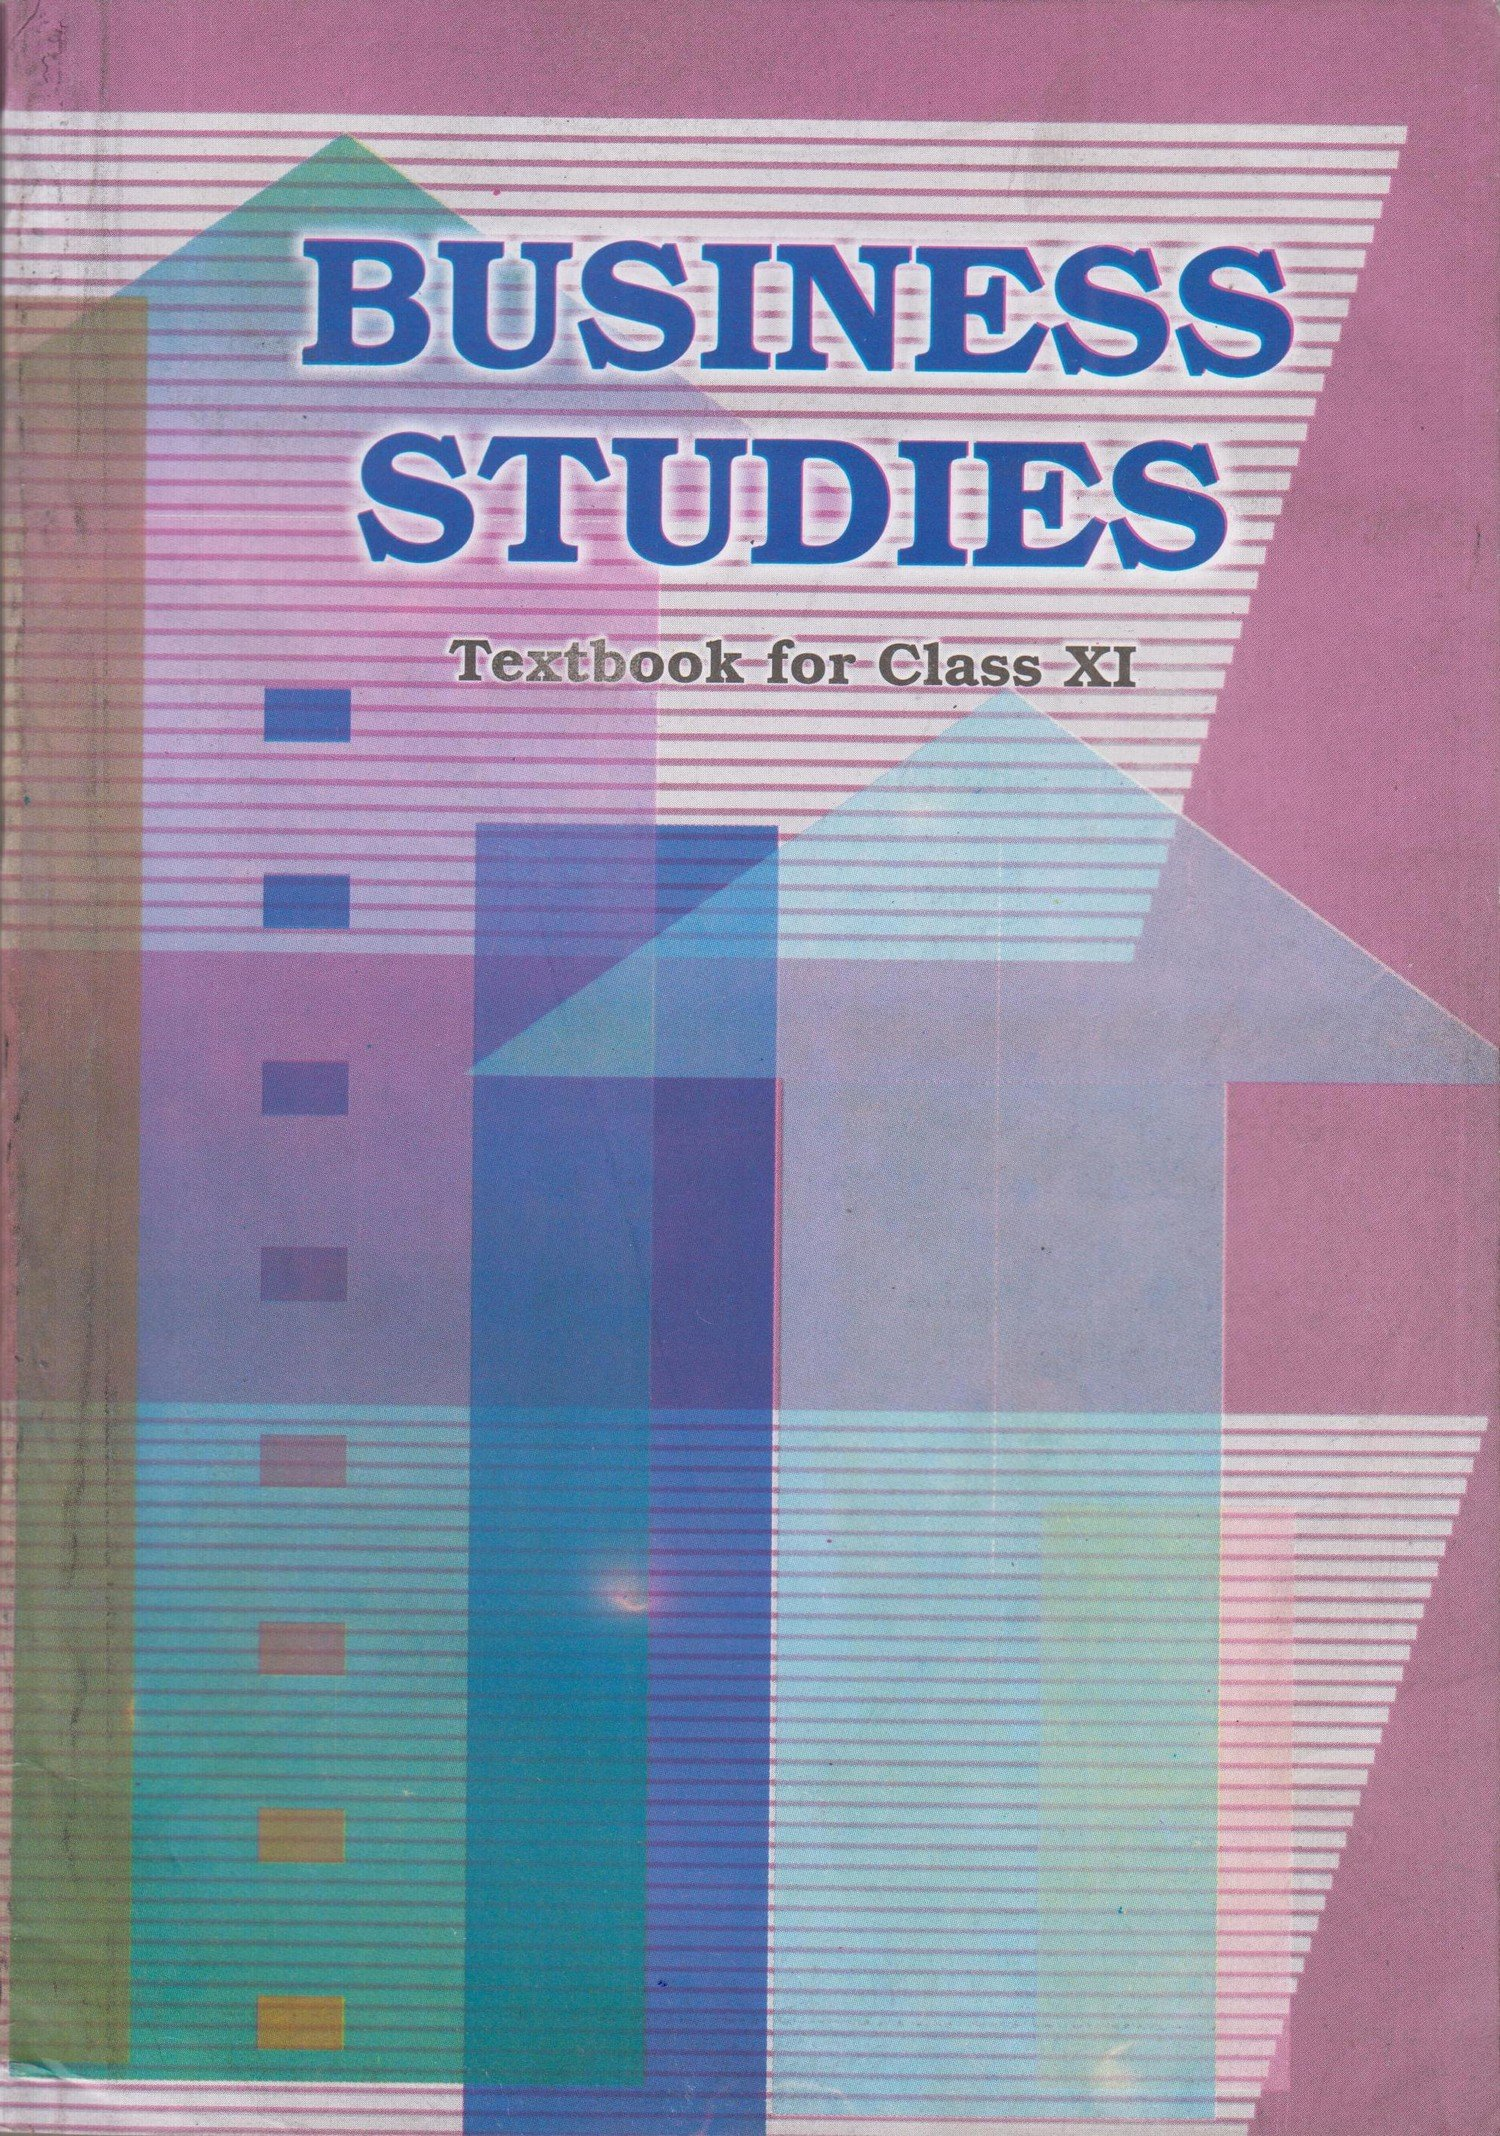 Buy business studies textbook for class 11 11108 book online at buy business studies textbook for class 11 11108 book online at low prices in india business studies textbook for class 11 11108 reviews ratings malvernweather Choice Image